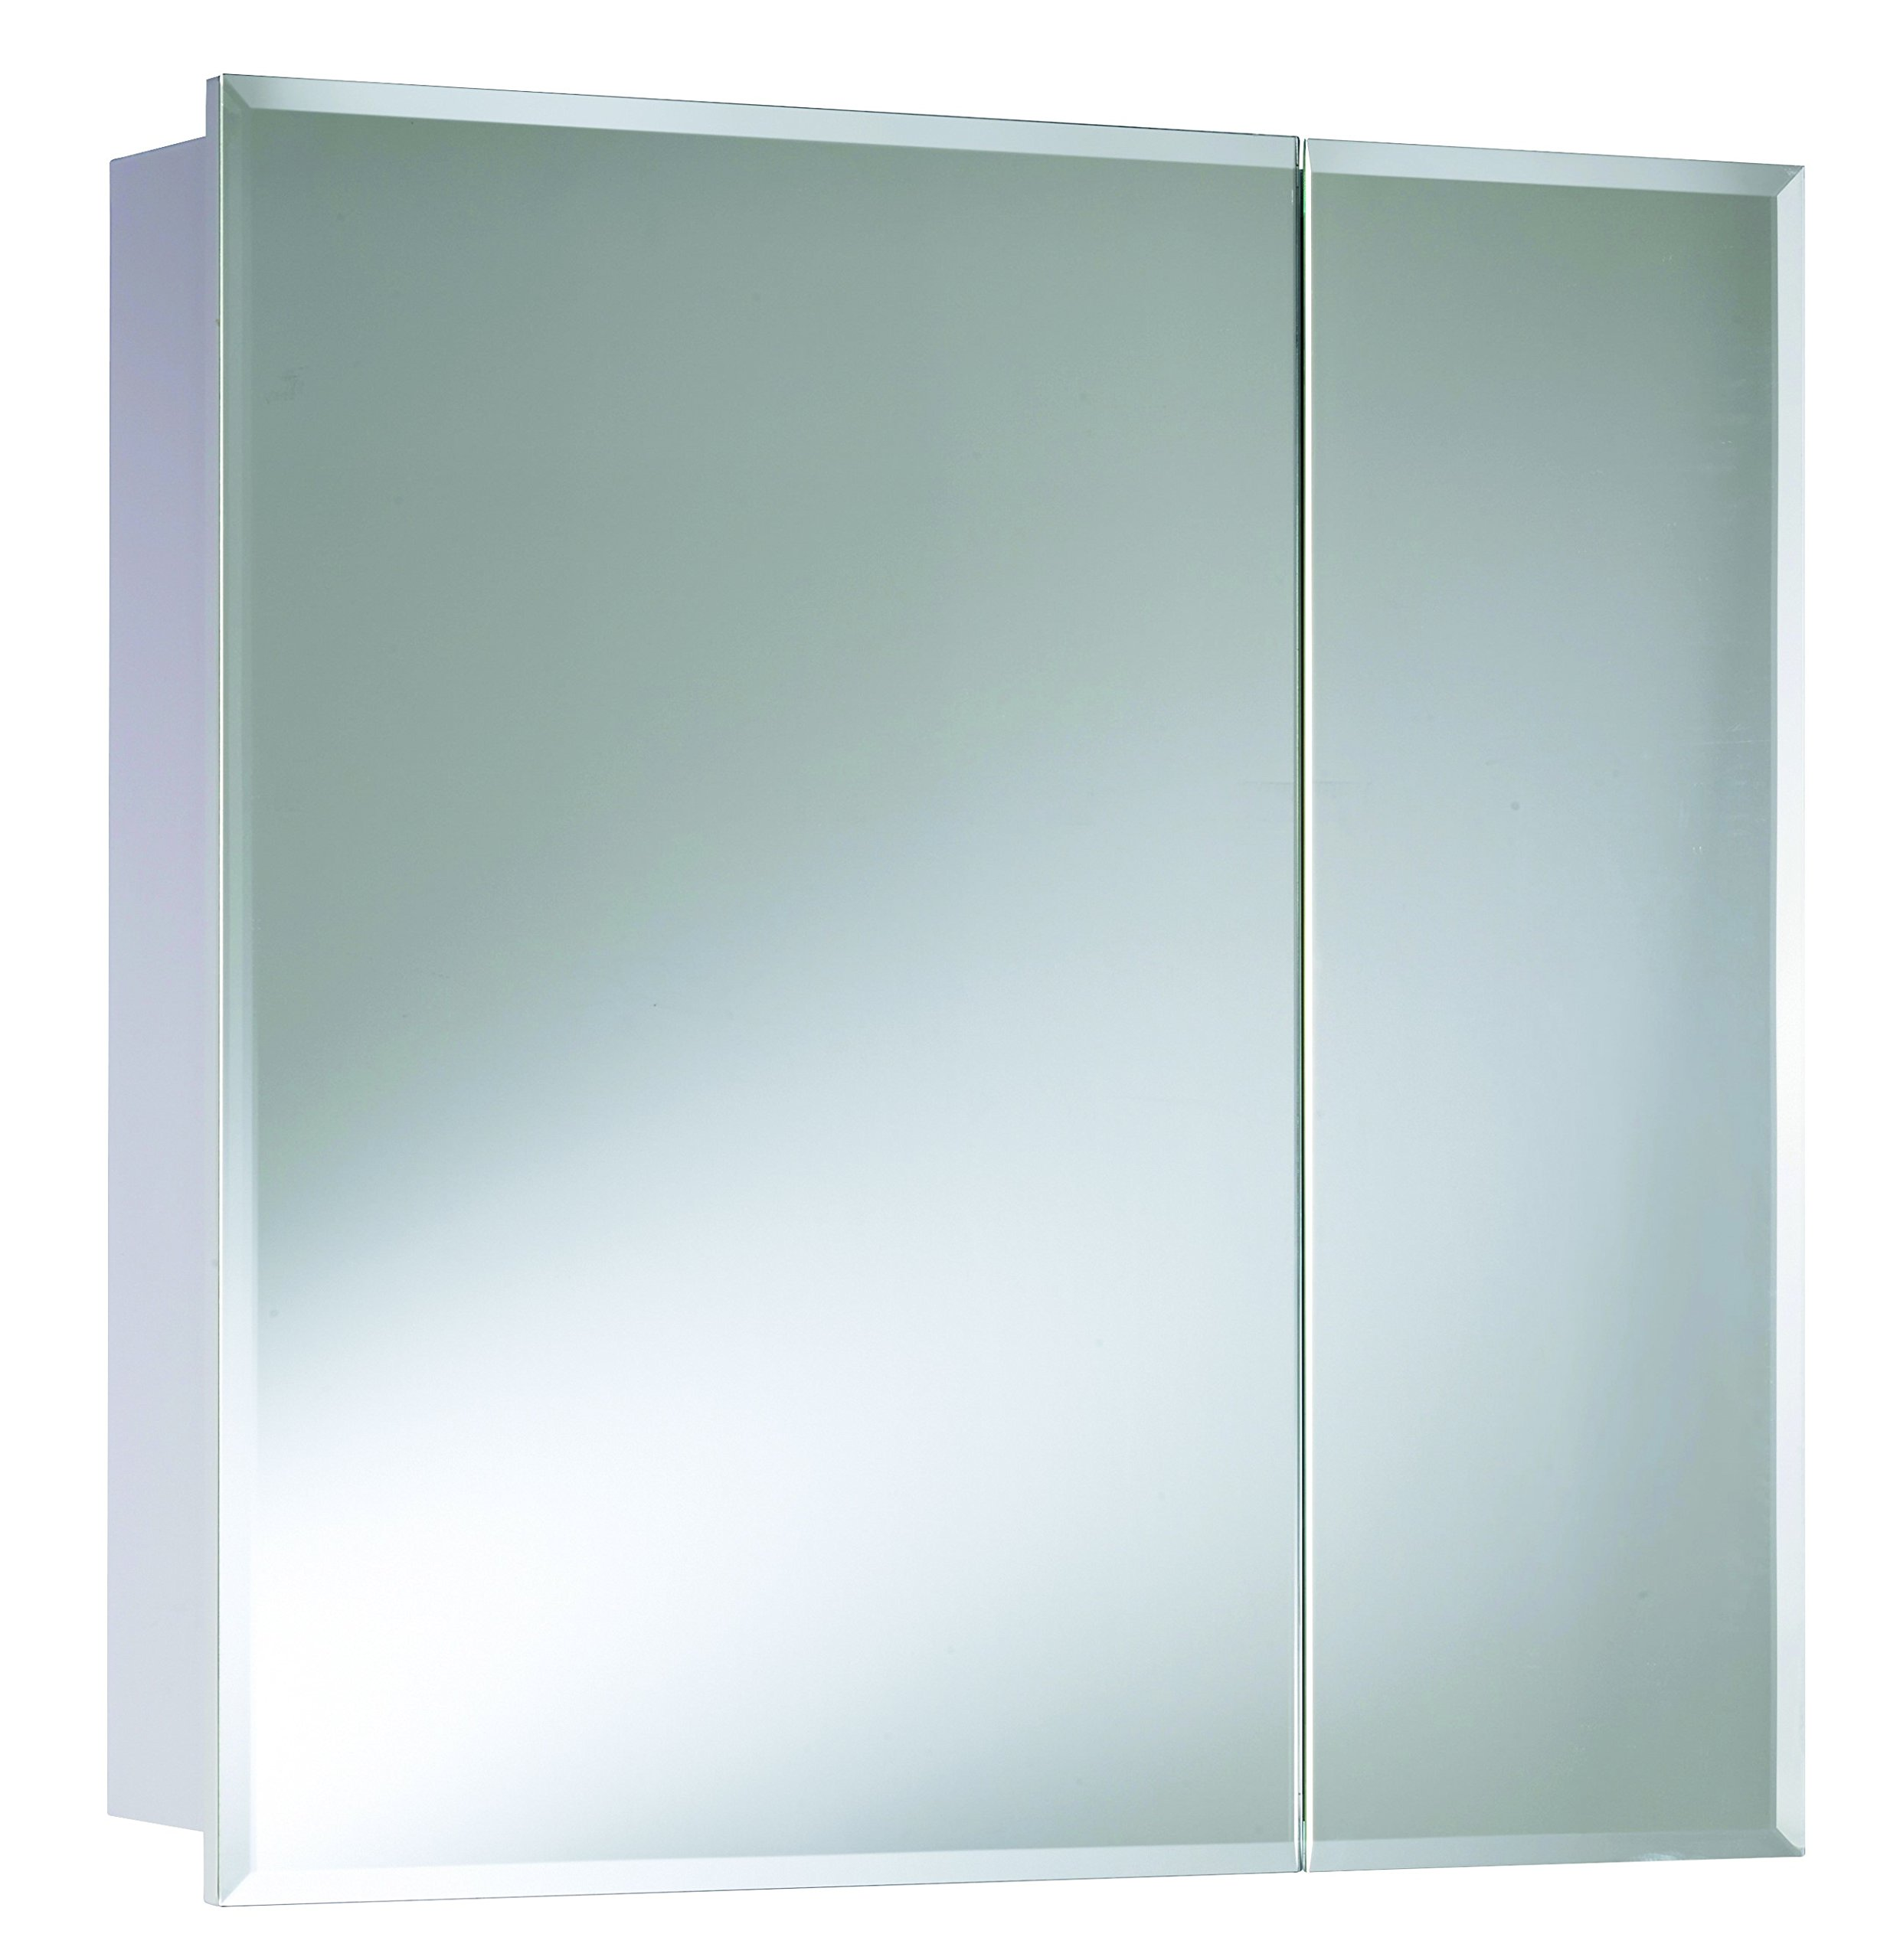 Croydex Wellington 24-Inch x 24-Inch Double Door Bi-View Cabinet with Hang 'N' Lock Fitting System